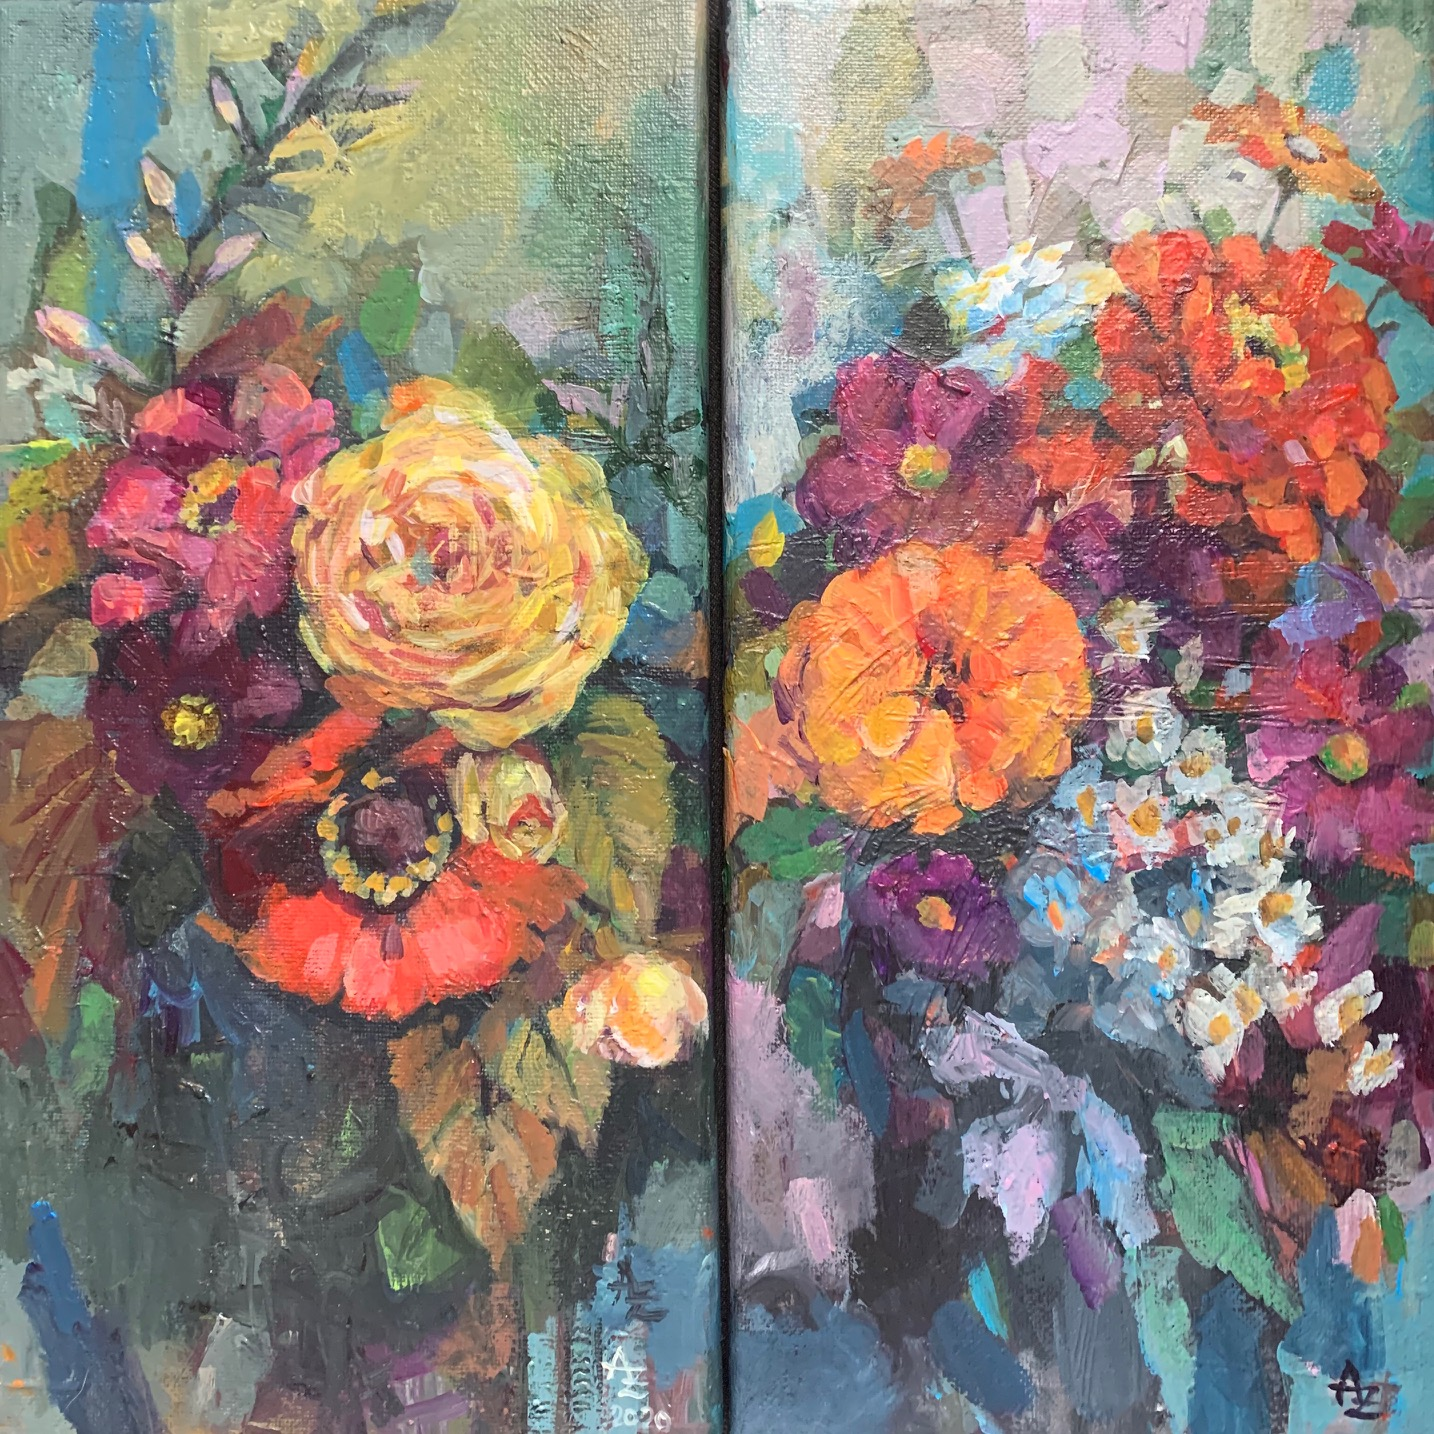 September blooms, set of 2 canvases